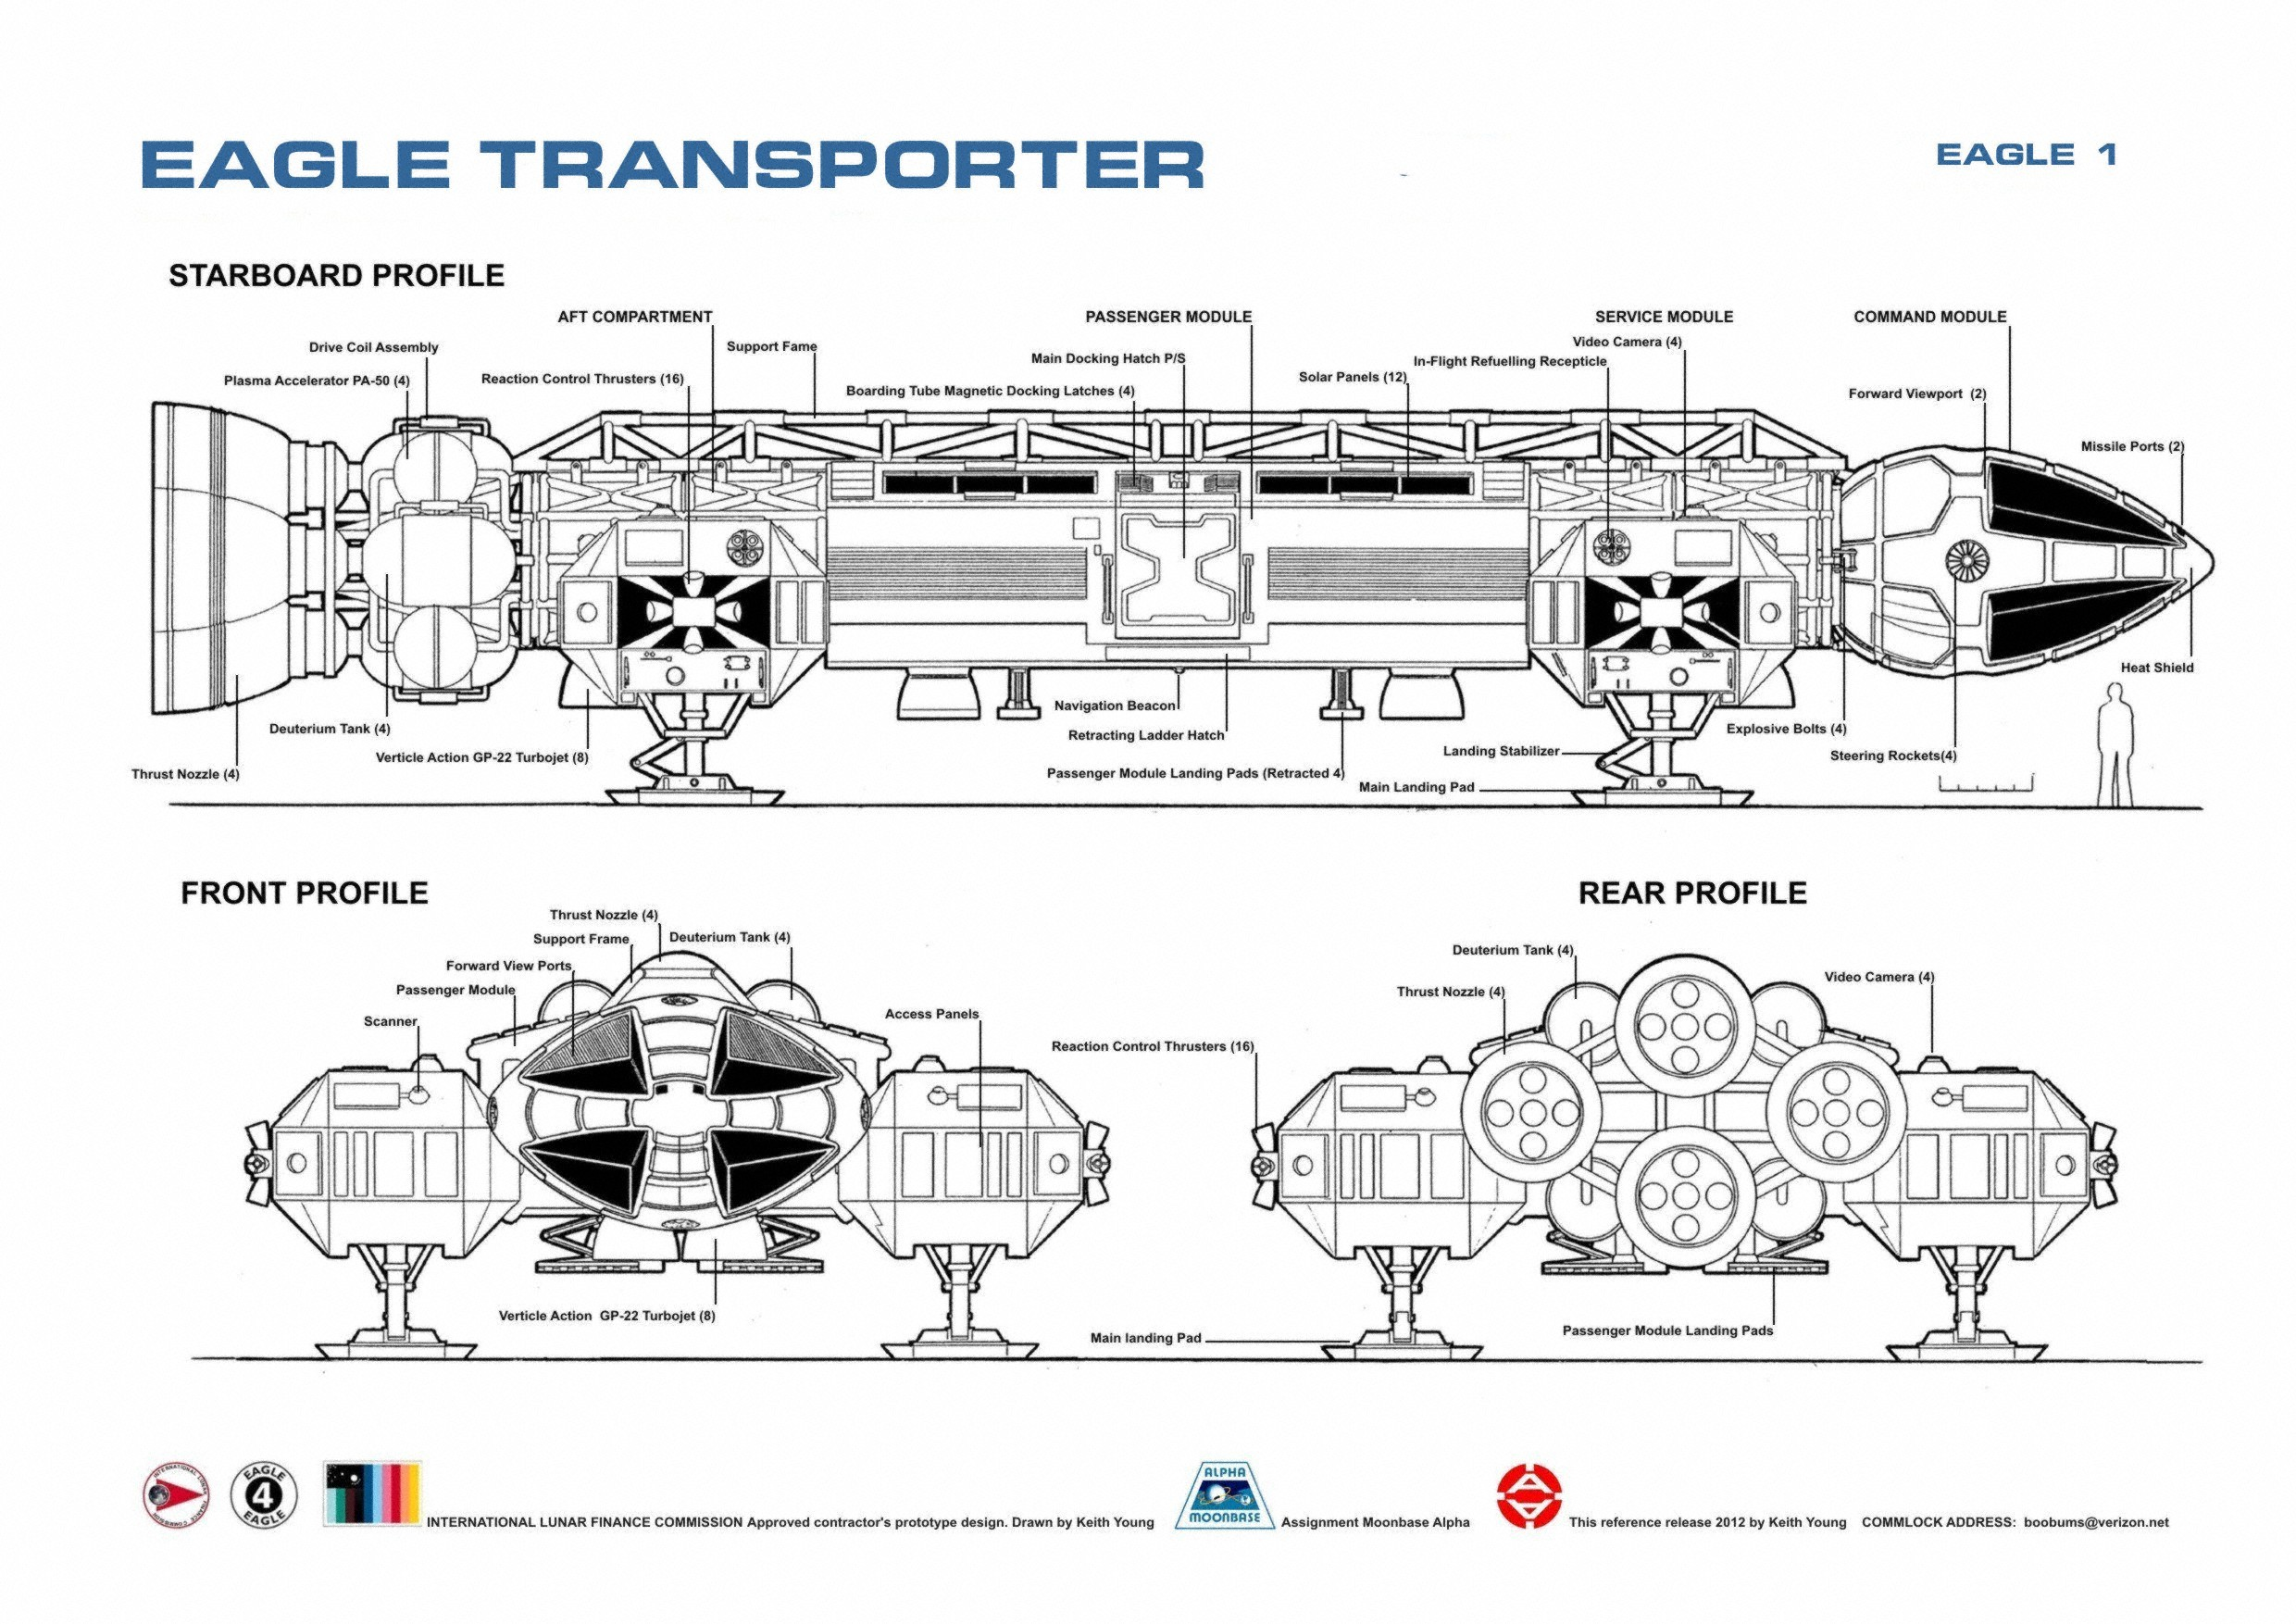 Blueprints moonbase alpha reference guide special preview edition blueprints moonbase alpha reference guide special preview edition by keith young 2012 republibot malvernweather Choice Image